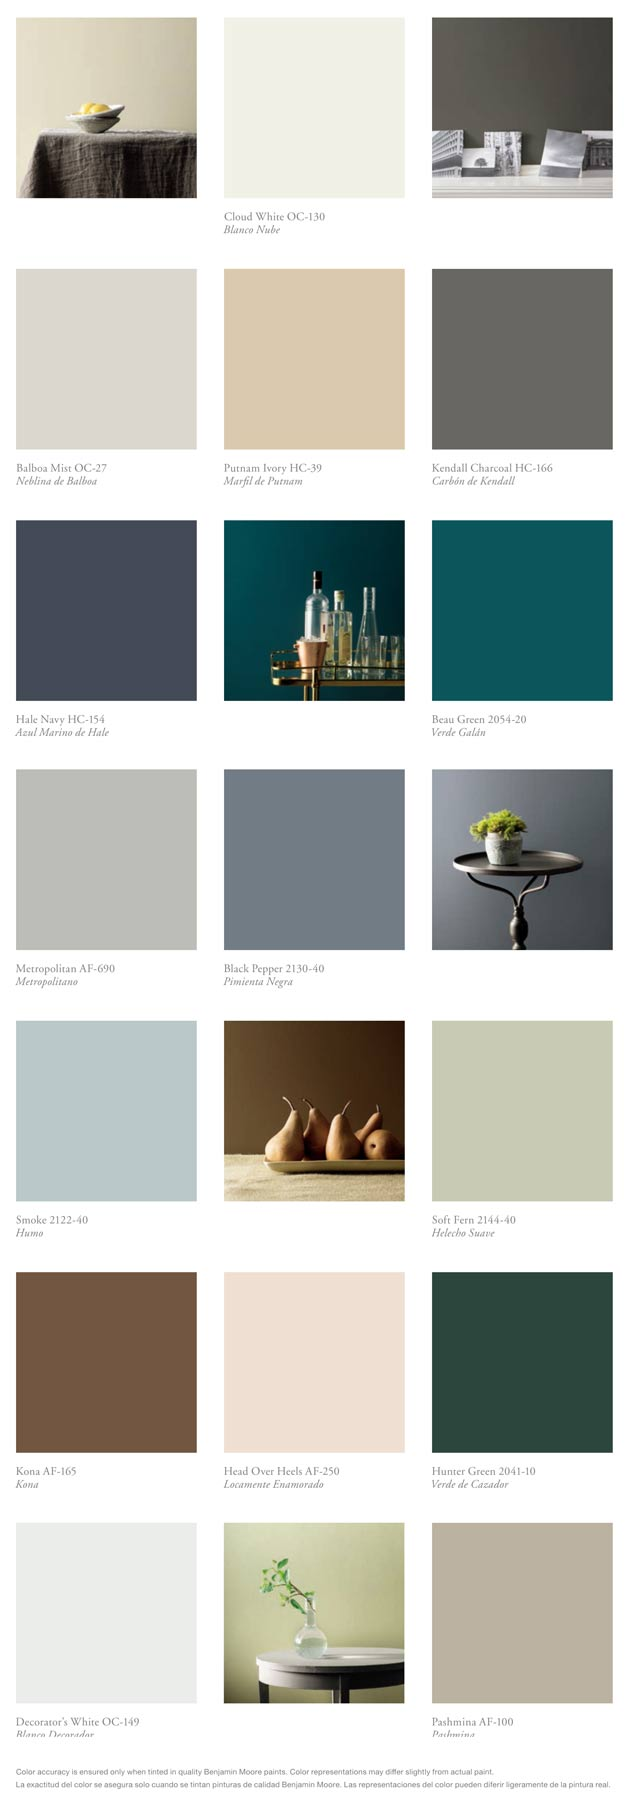 Color swatches shown here were provided by Benjamin Moore. Due to fluctuating ink coverage in the printing process, these colors may vary slightly. Please check with your local paint supplier for its true colors of current trends.